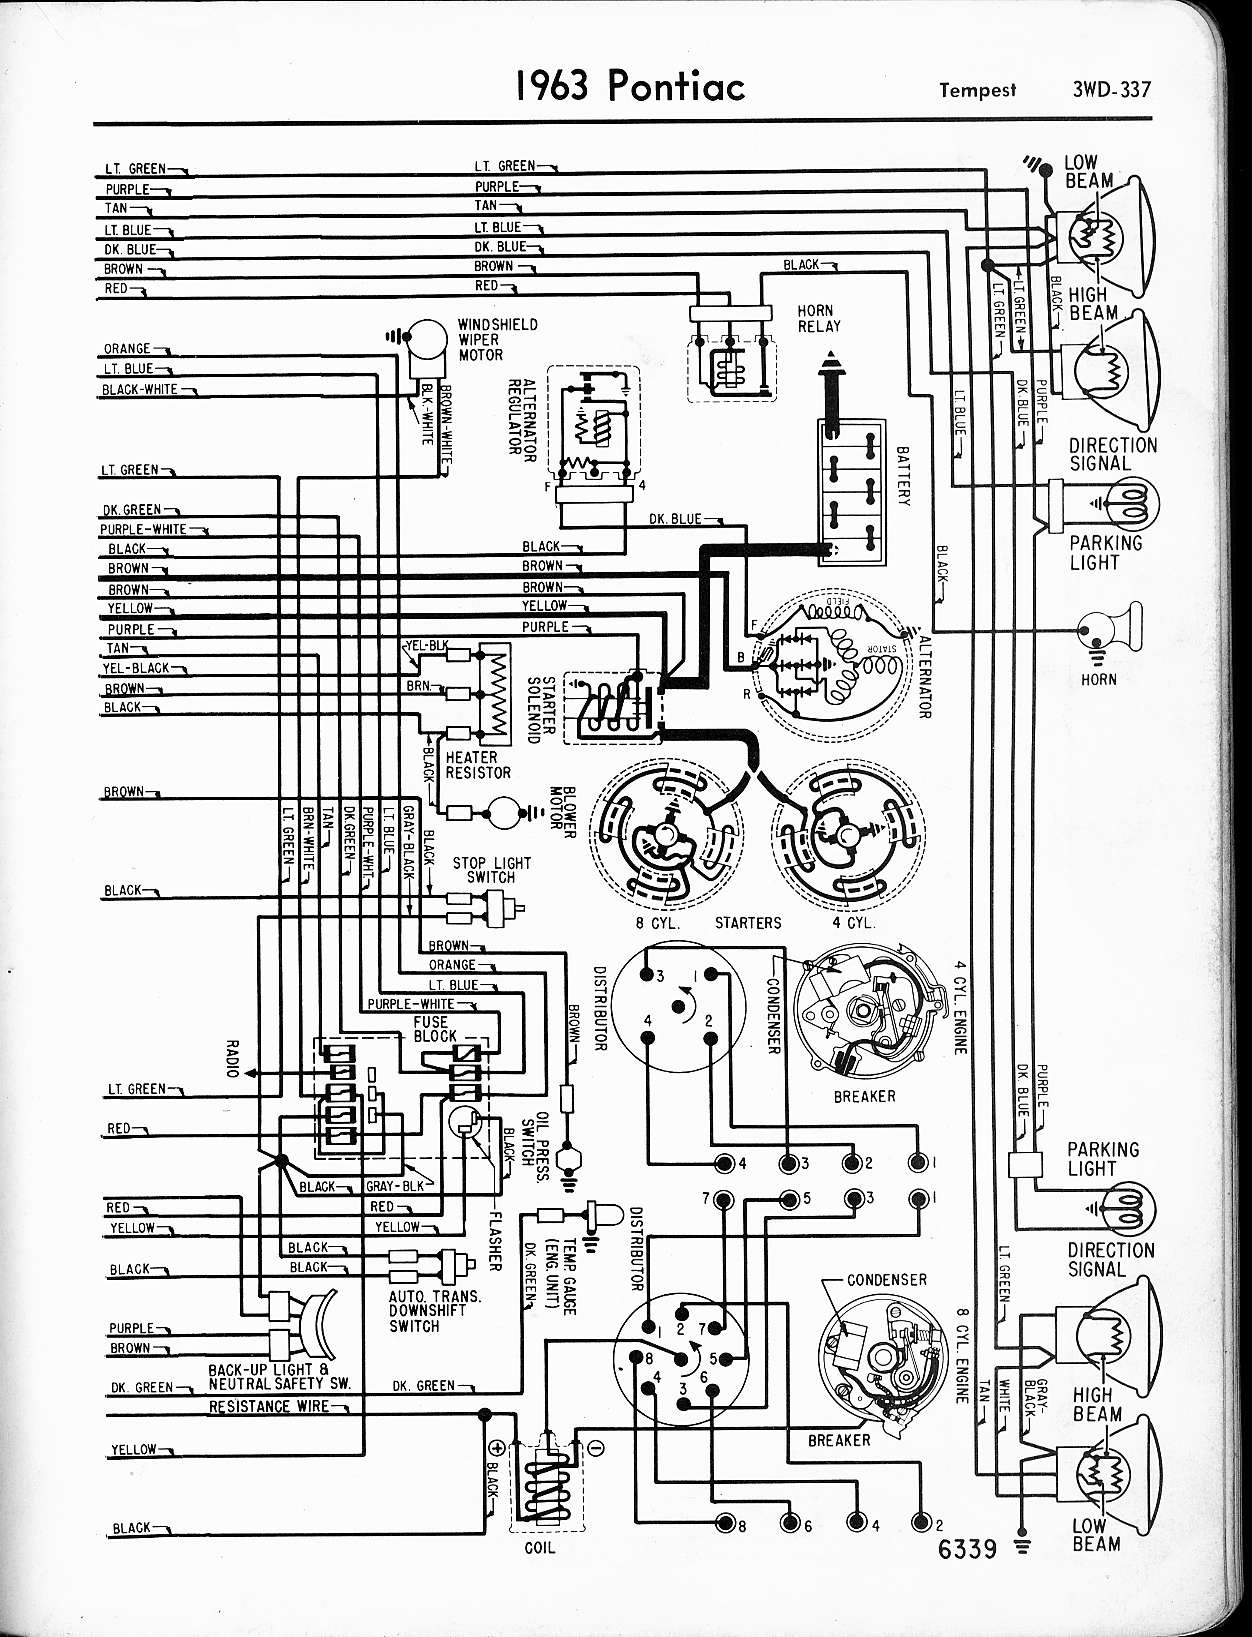 1972 triumph bonneville wiring diagram audi a6 c6 tail light 1970 gto fuse box 1969 pontiac le mans data1970